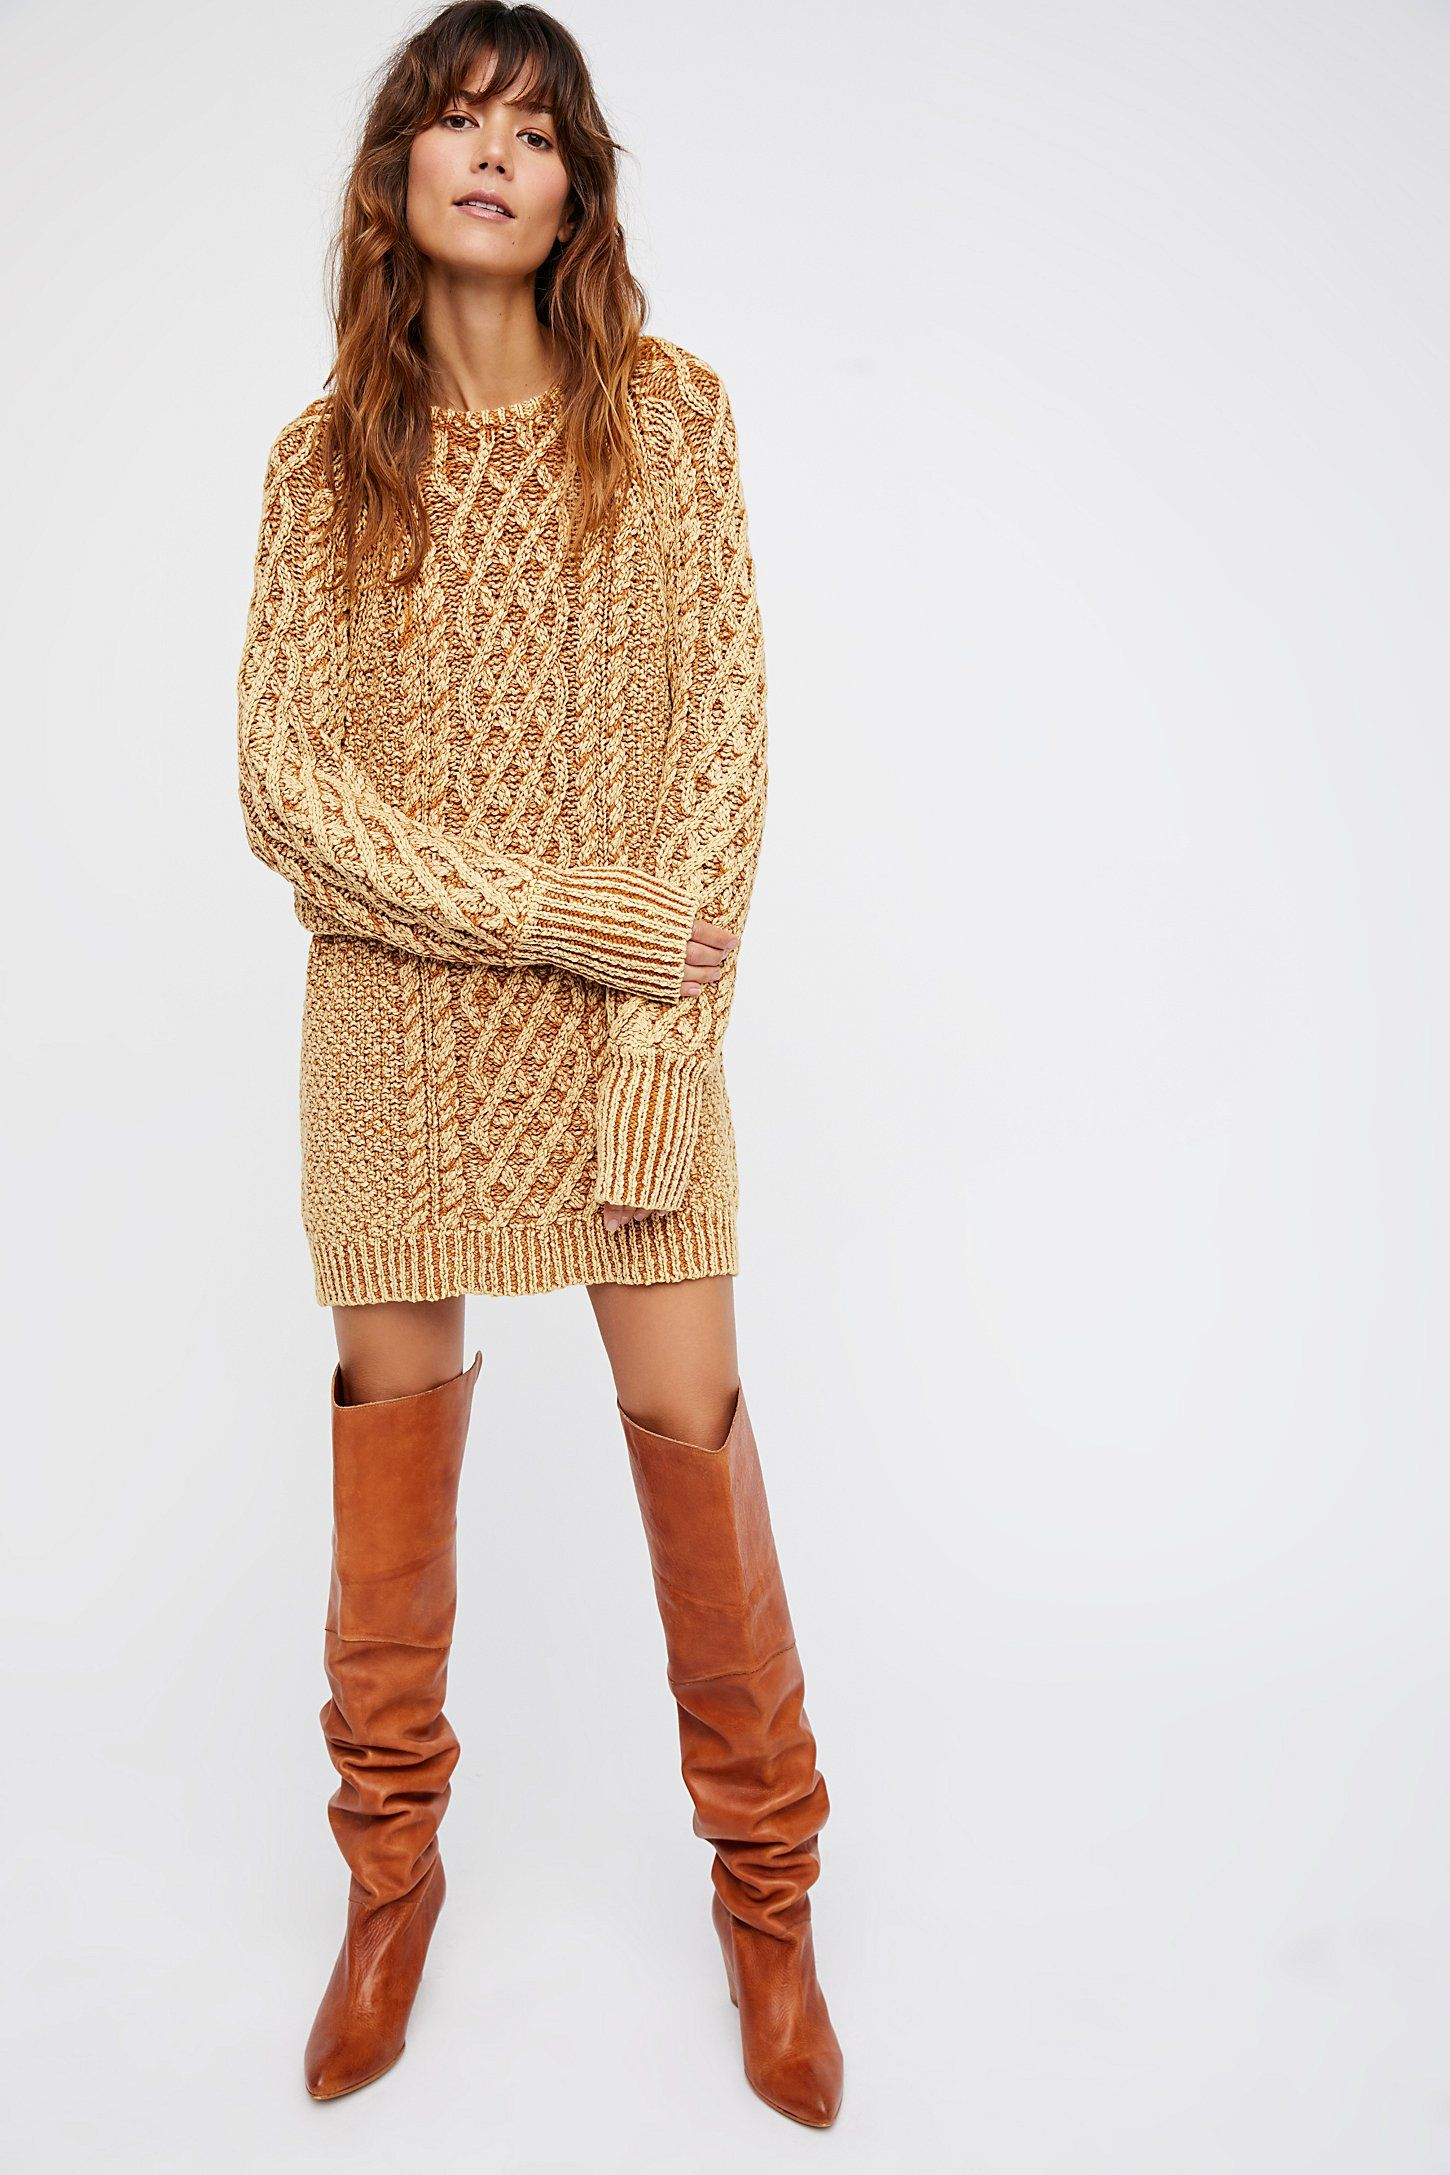 0f63922b69430 Shop our On A Boat Sweater Dress at Free People.com. Share style pics with  FP Me